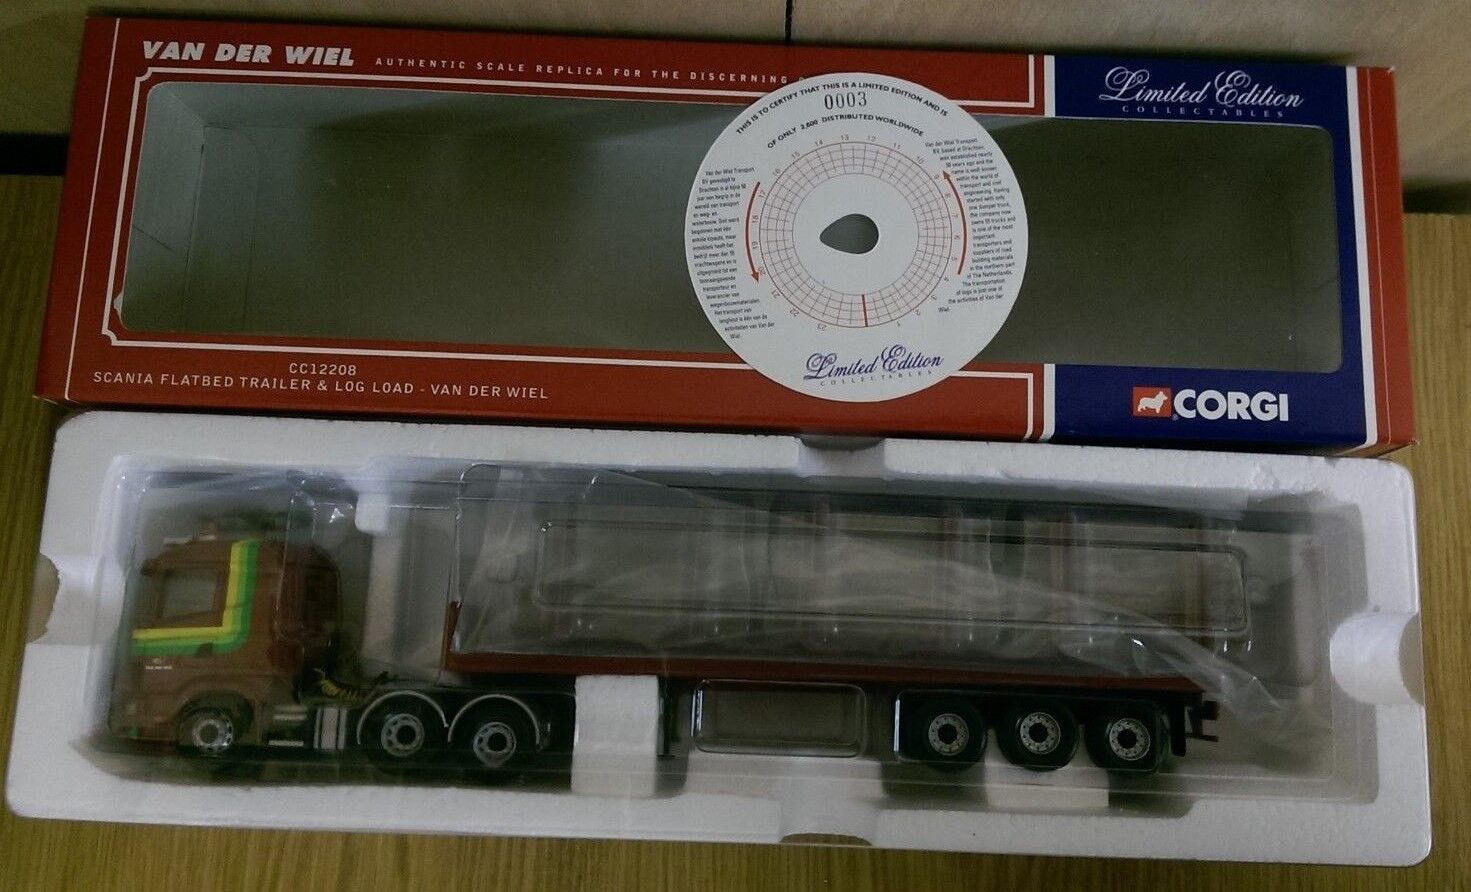 Corgi cc12208 scania - van der wiel ltd anhänger log laden. - 0003   2600